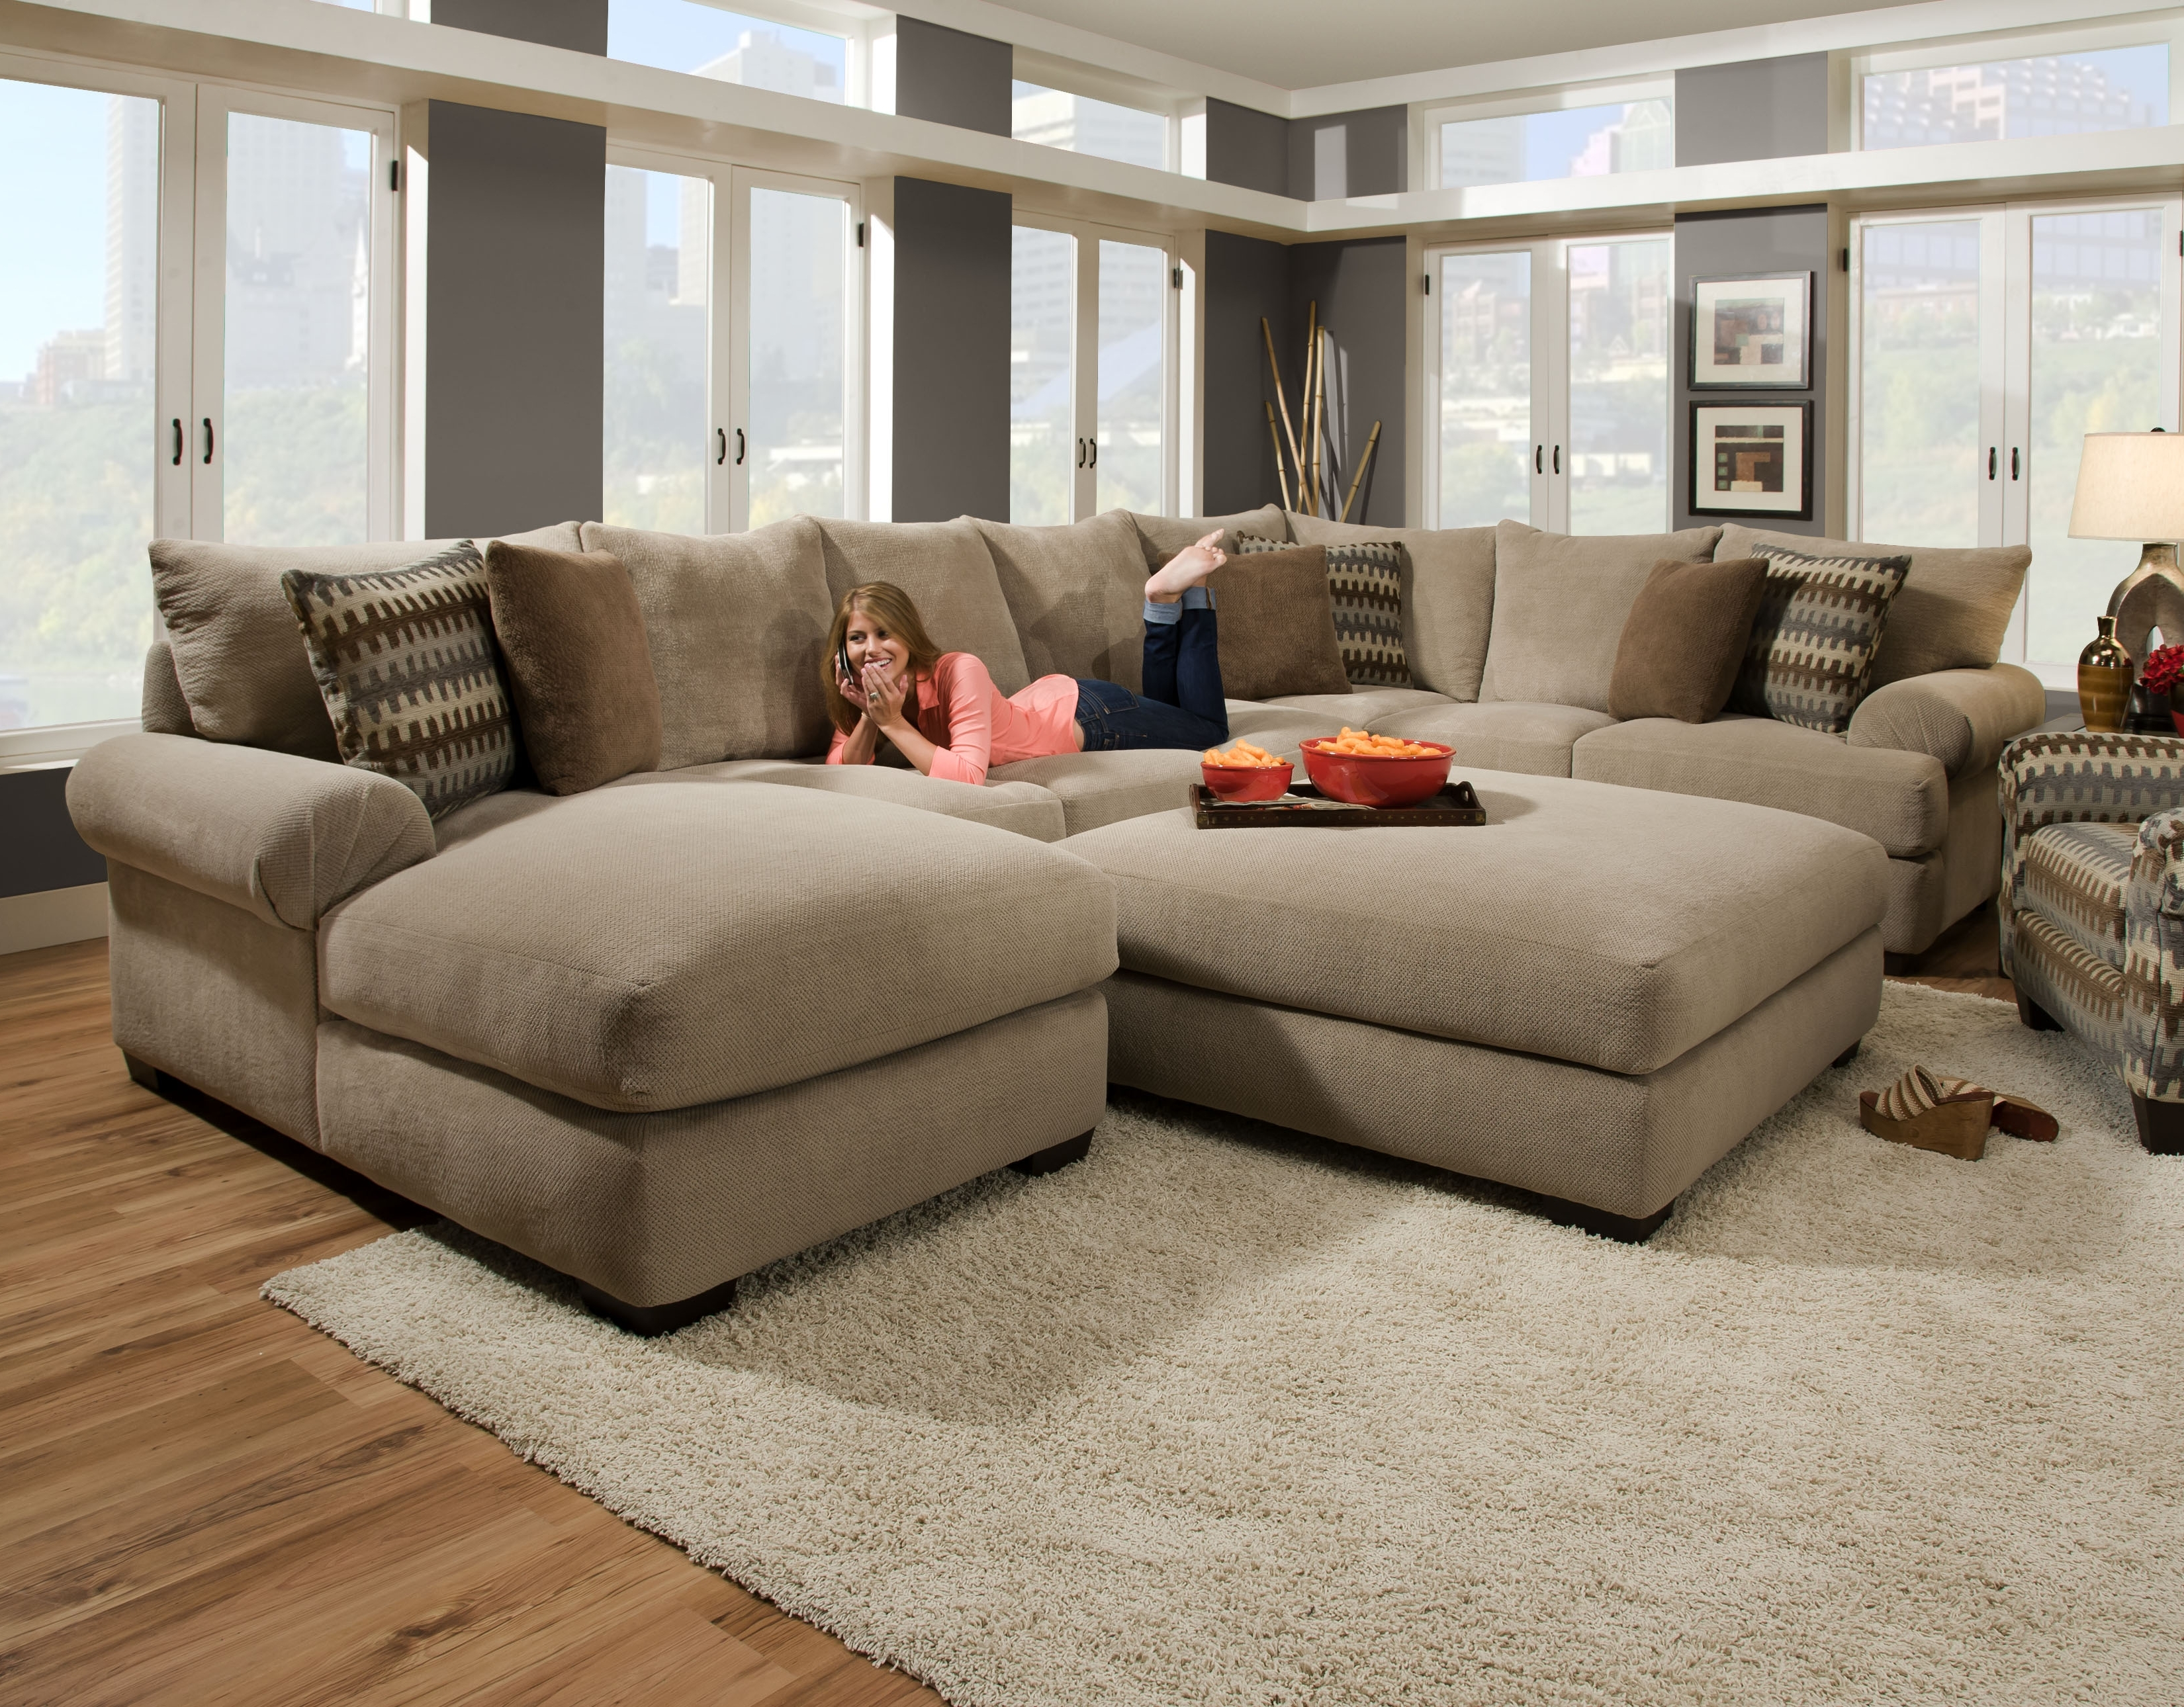 Bocha Stone 3Pc Intended For 2018 Layaway Sectional Sofas (View 2 of 15)